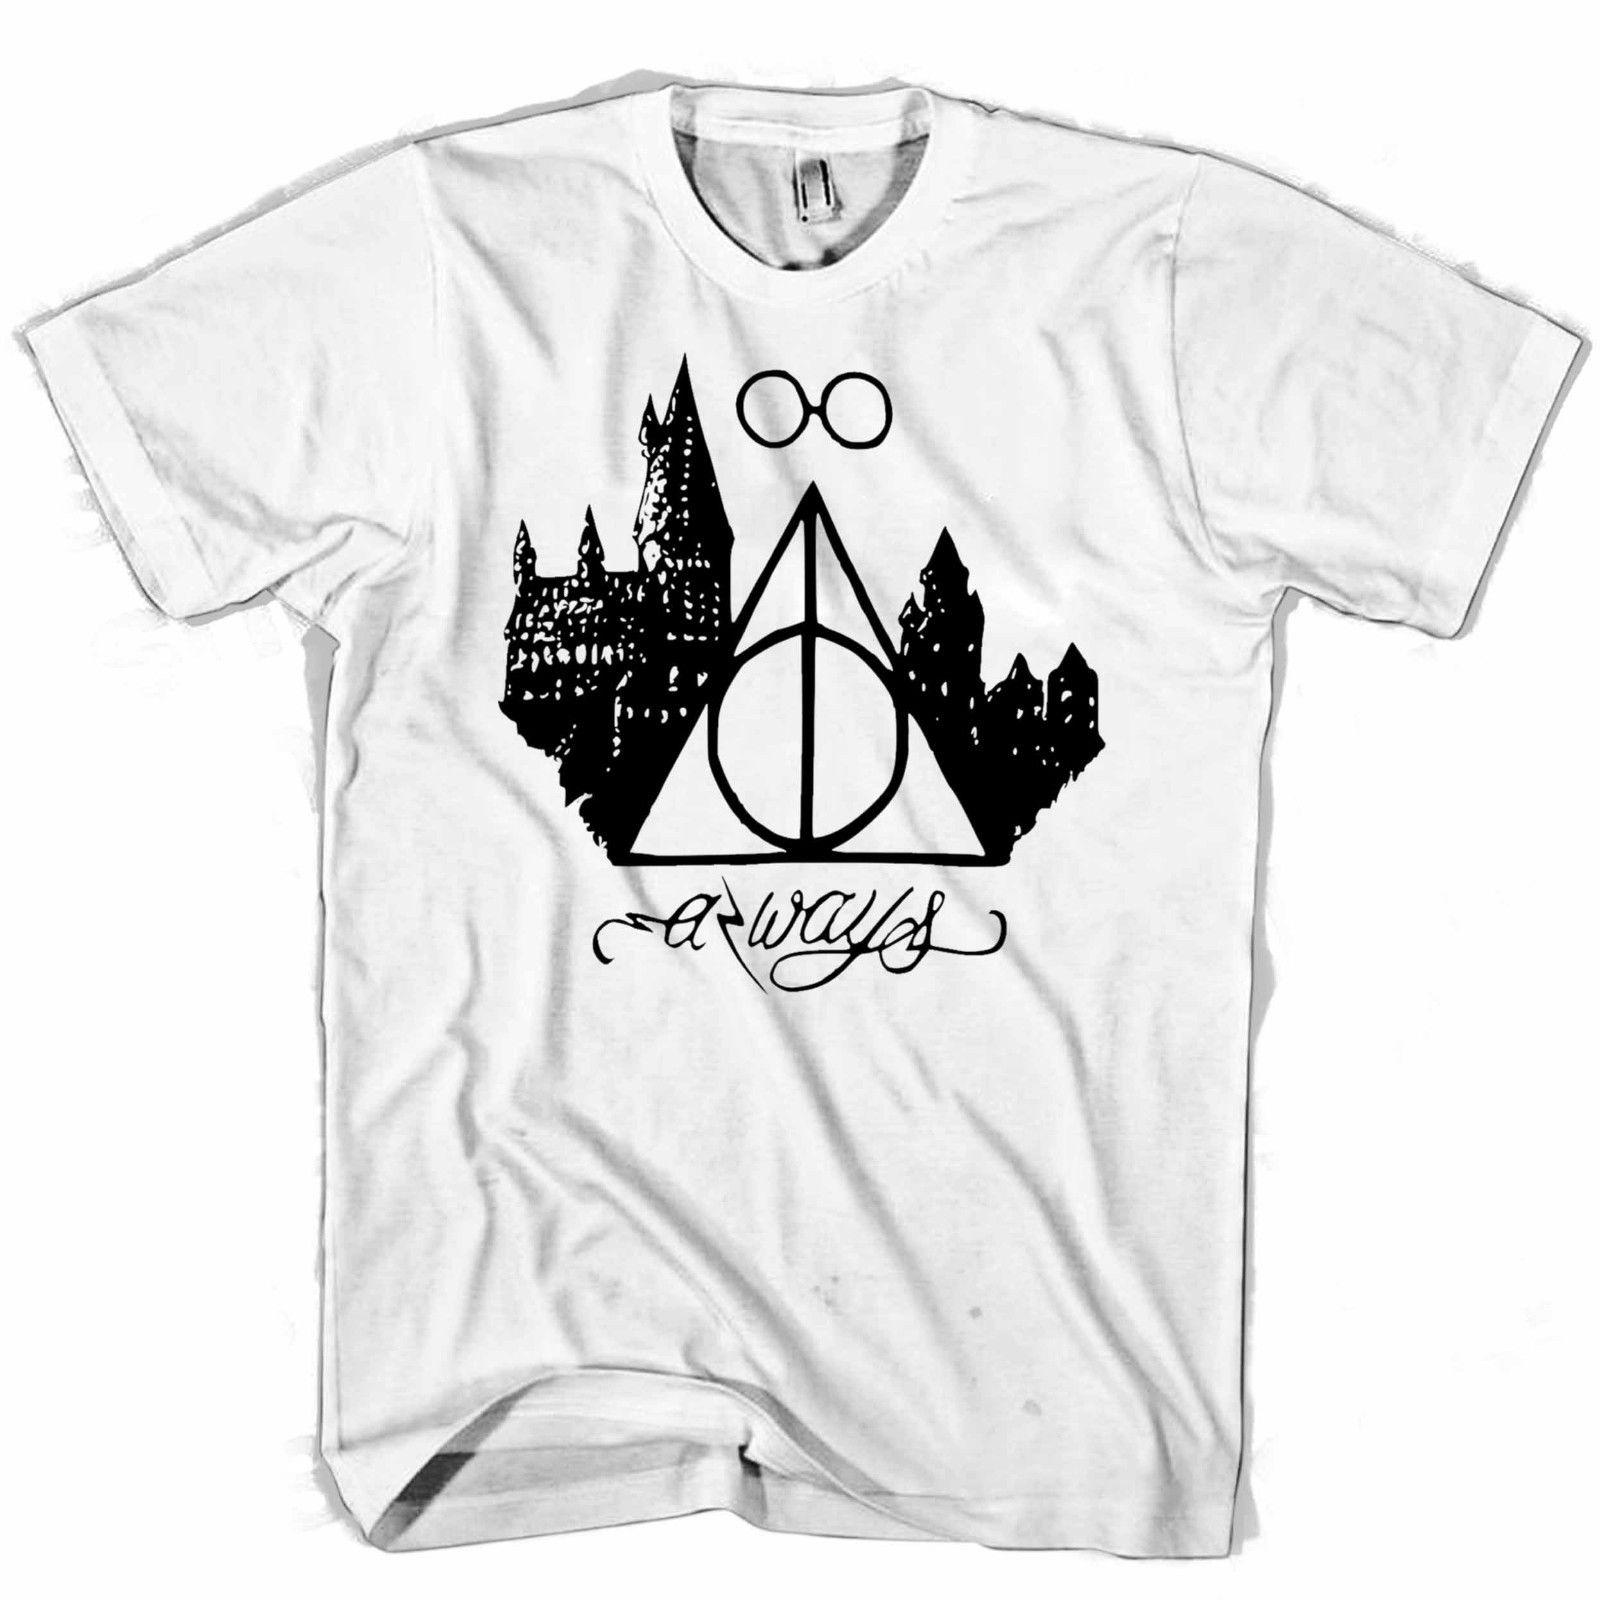 93e791530 Harry Potter Hogwarts Always Men'S / Women'S T ShirtFunny Unisex Casual  Tshirt Top Shirts With Designs R Shirt From Sg_outlet, $12.96| DHgate.Com